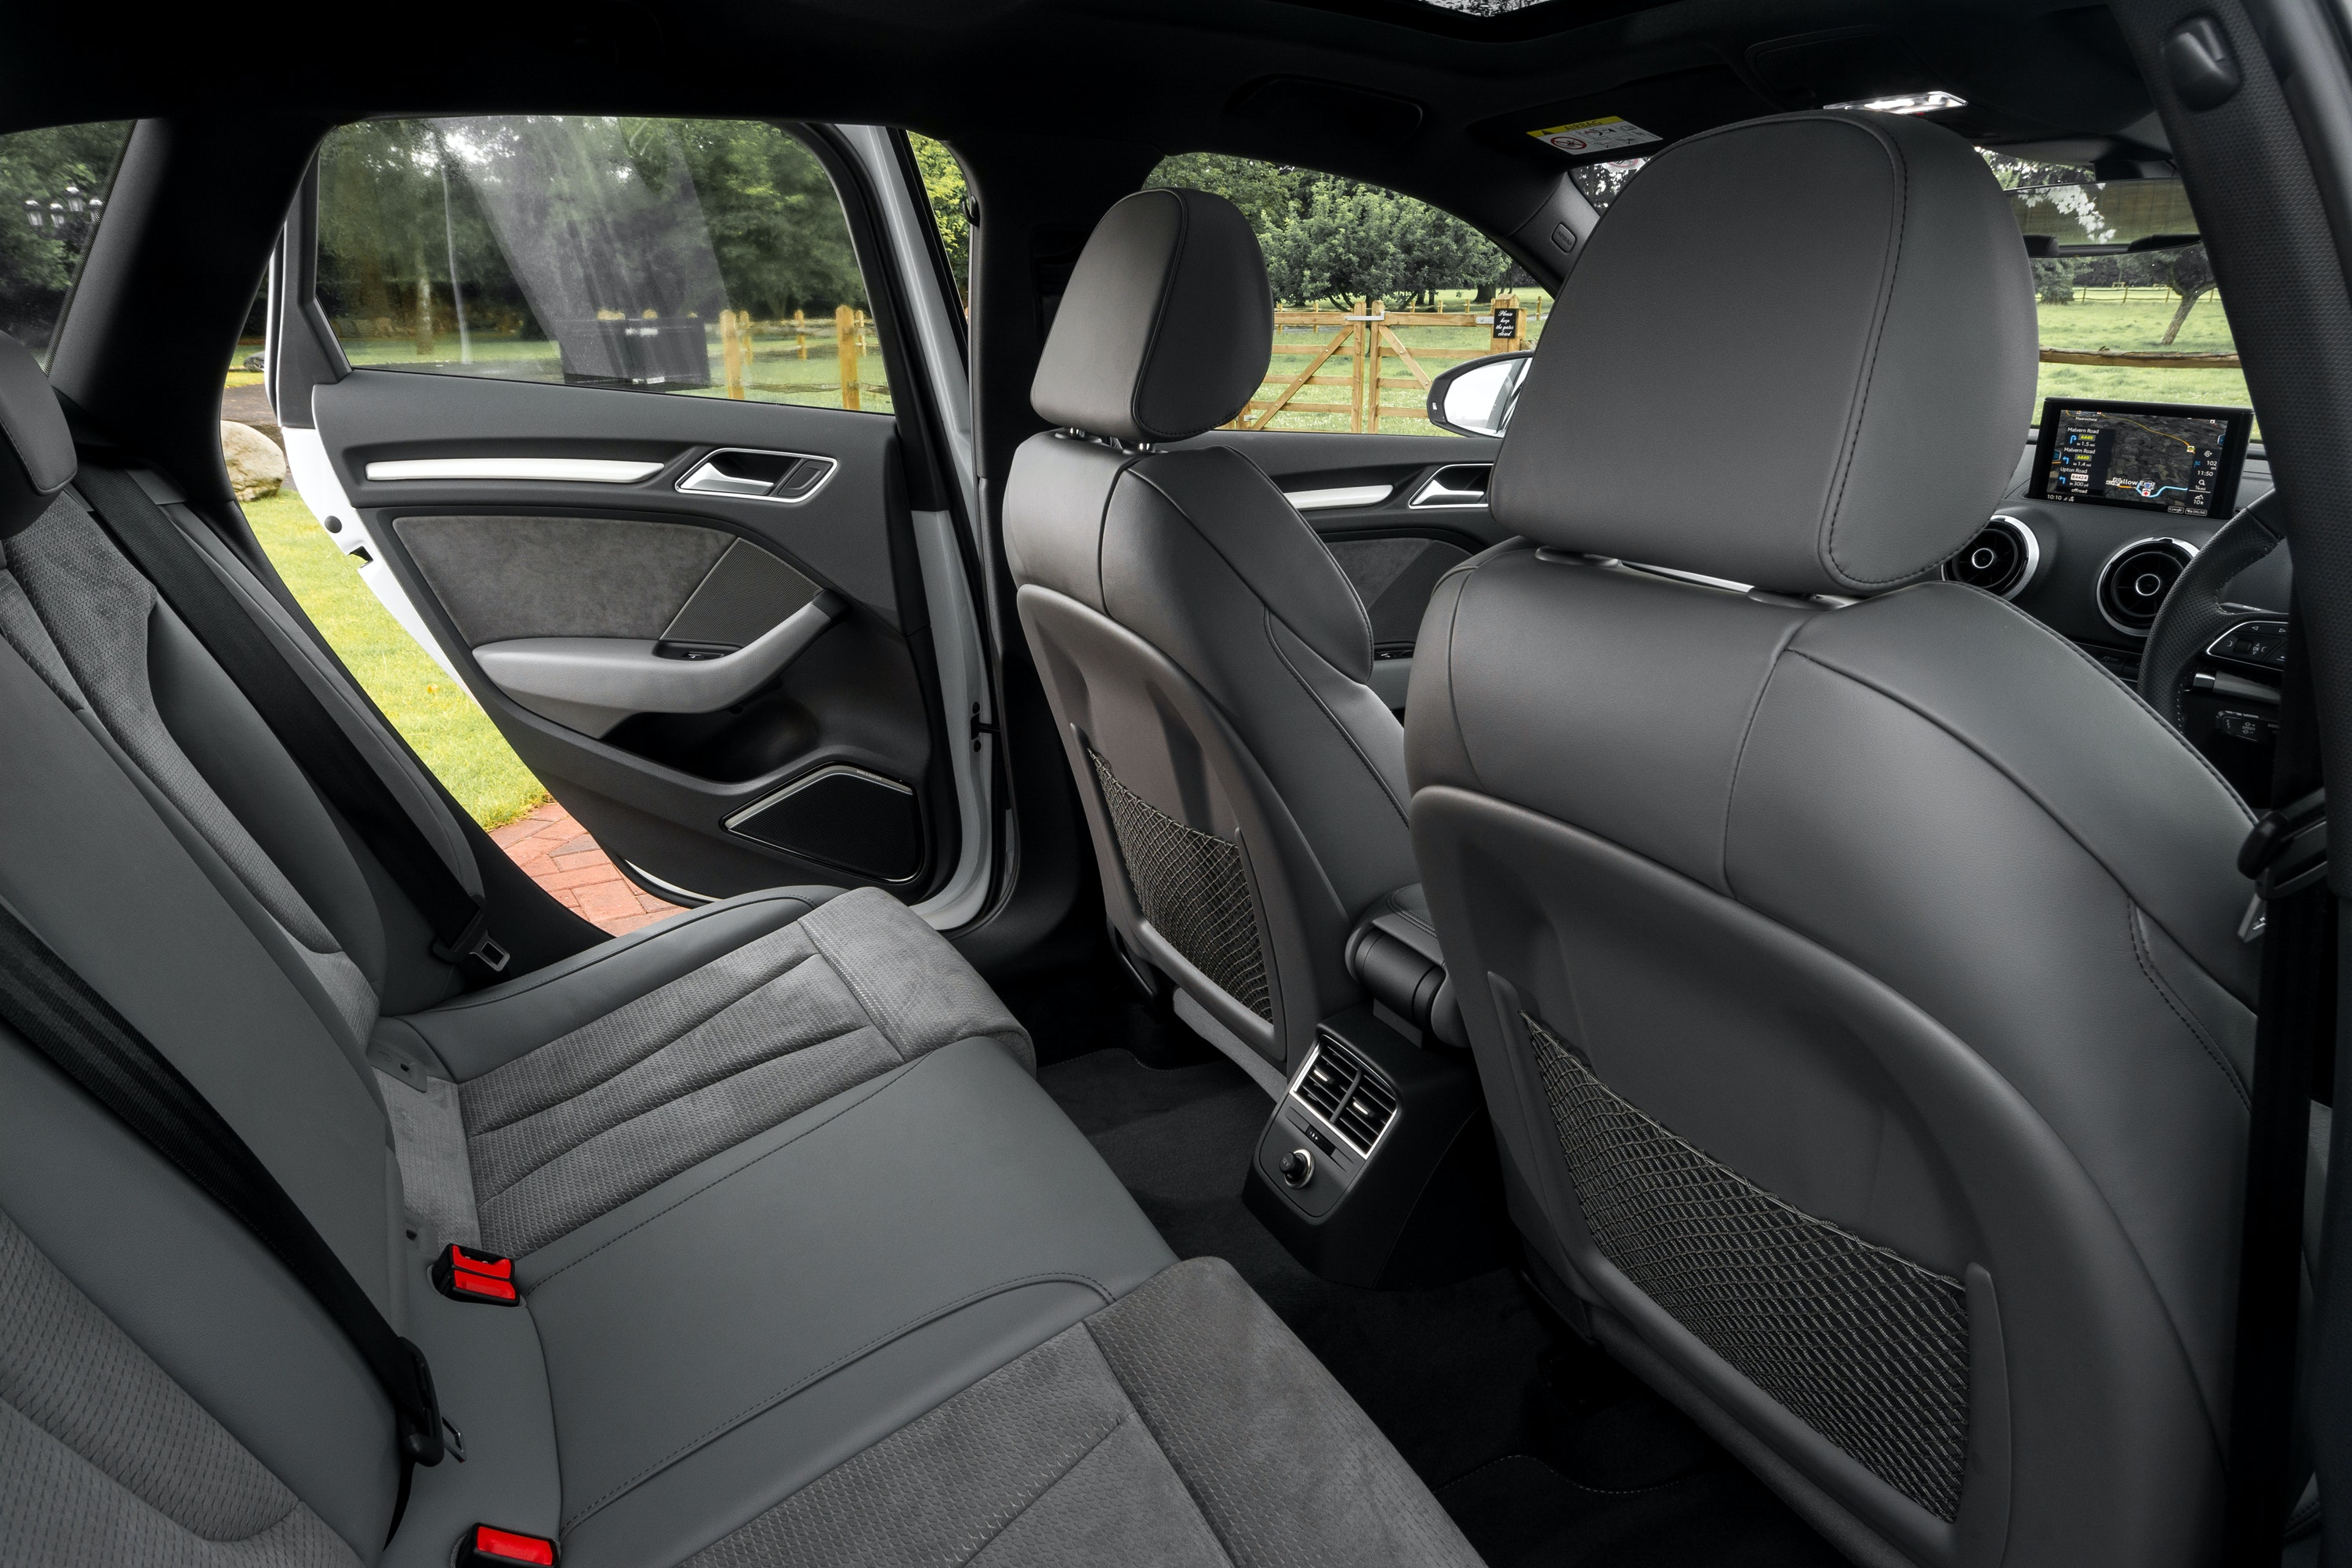 Two Adults Can Comfortably Fit In The Back